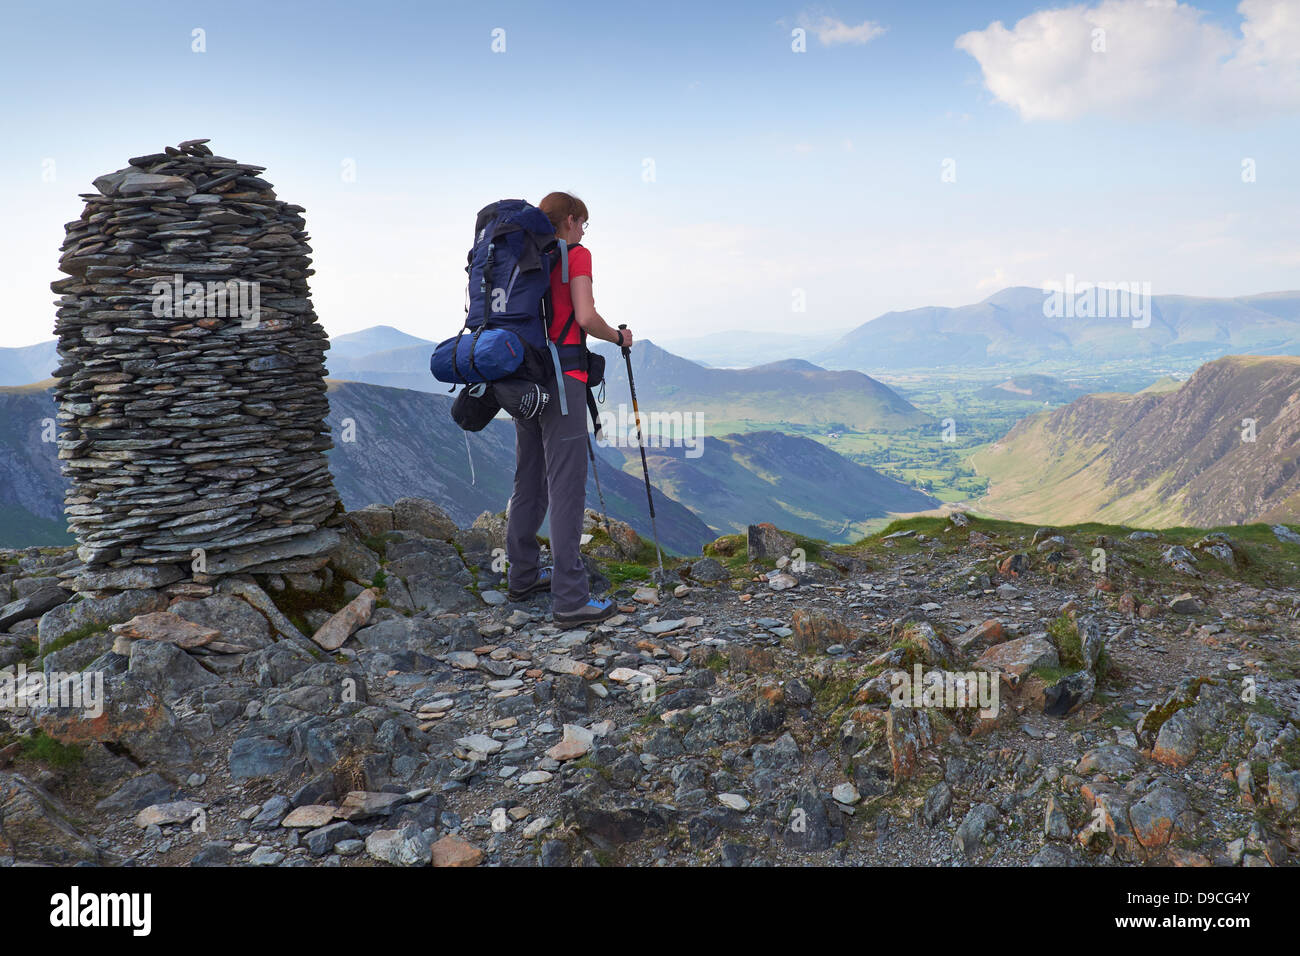 A hiker with a large backpack on the summit of Dale Head, Buttermere Fells in the Lake District. - Stock Image